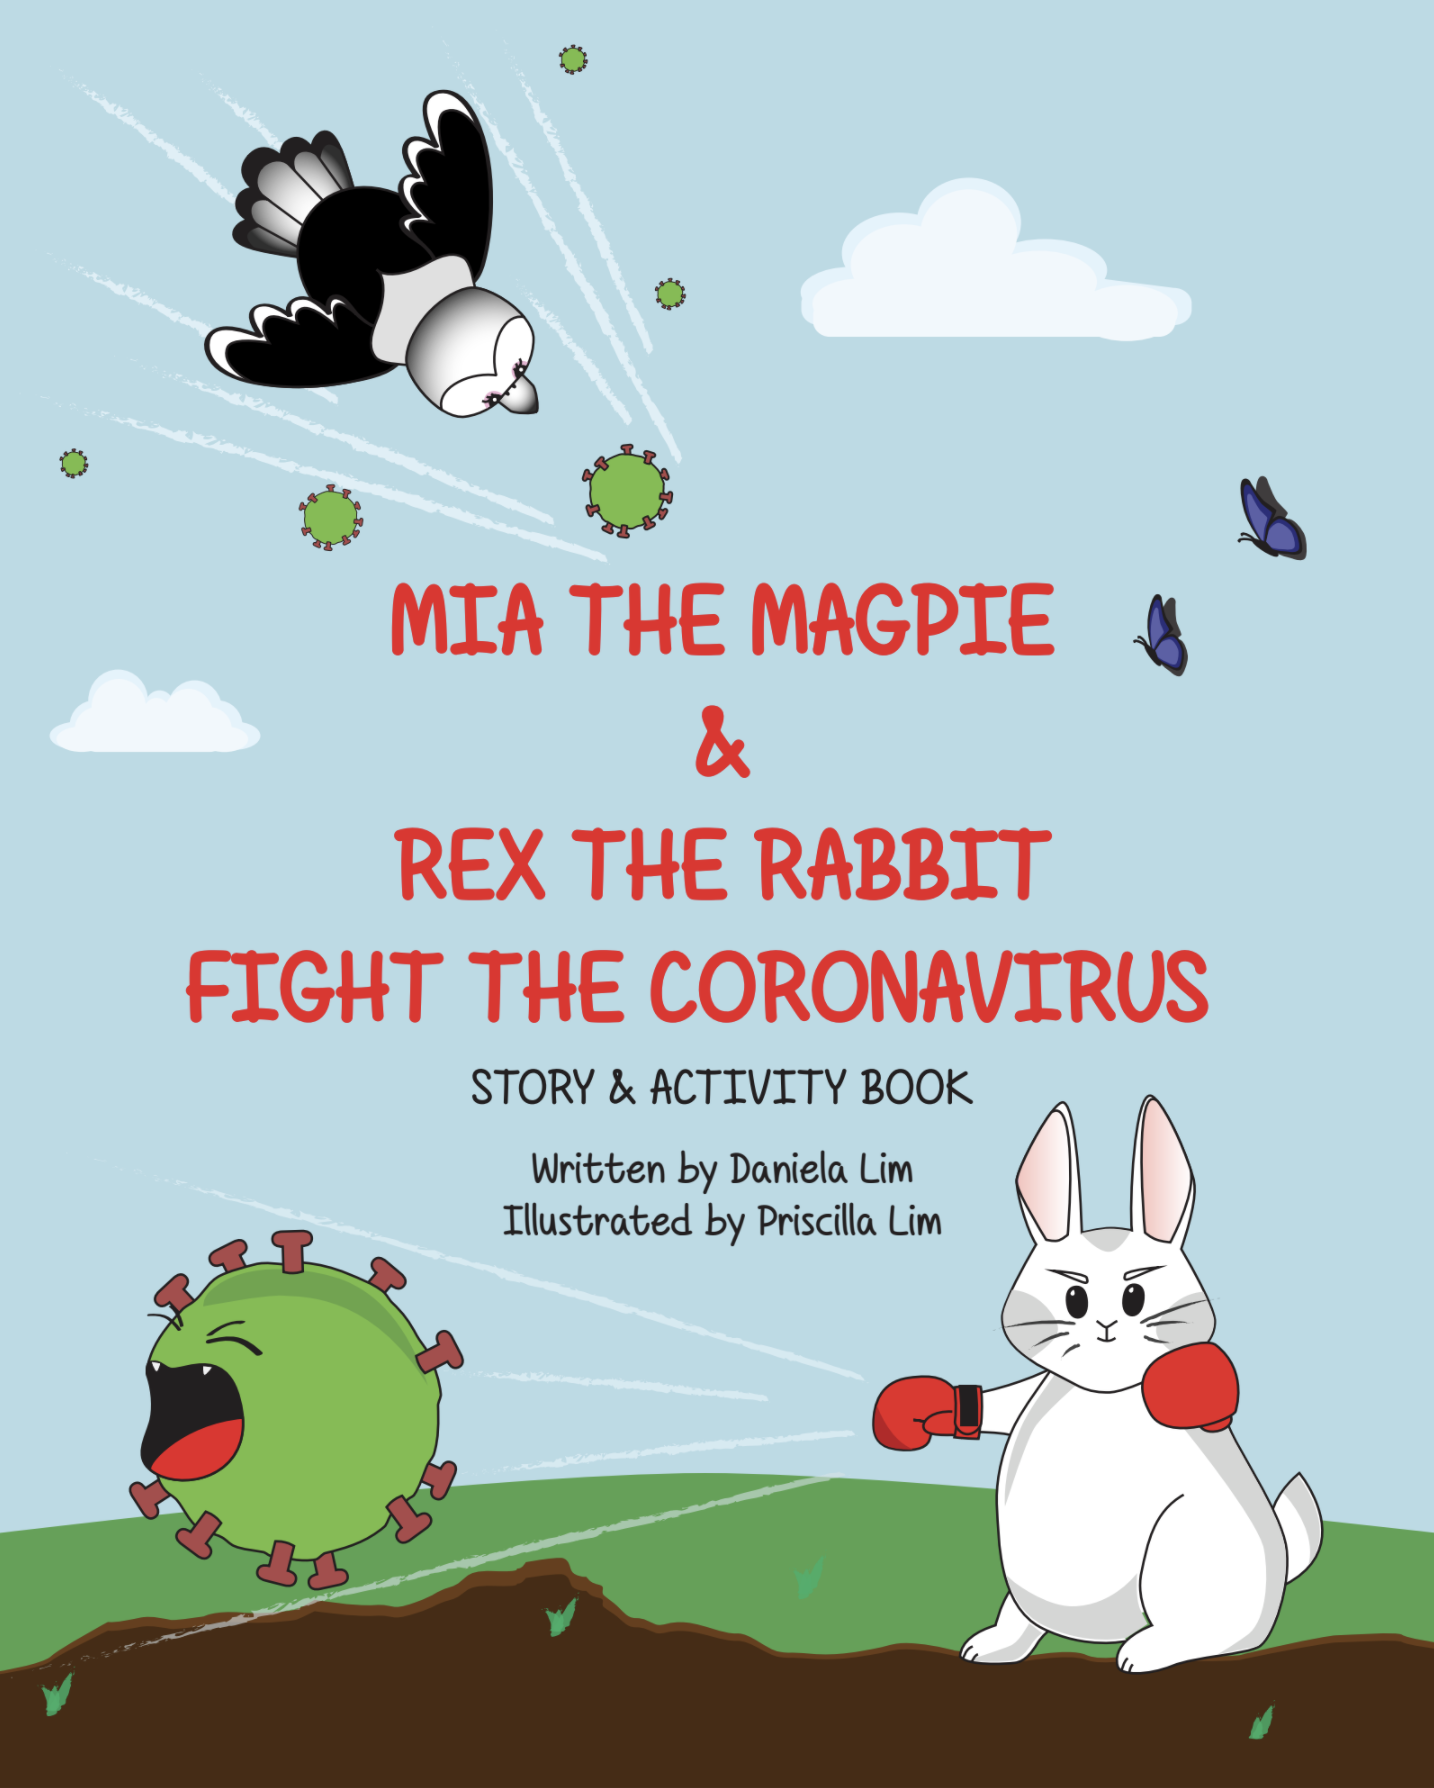 Mia the Magpie & Rex the Rabbit Fight the Coronavirus